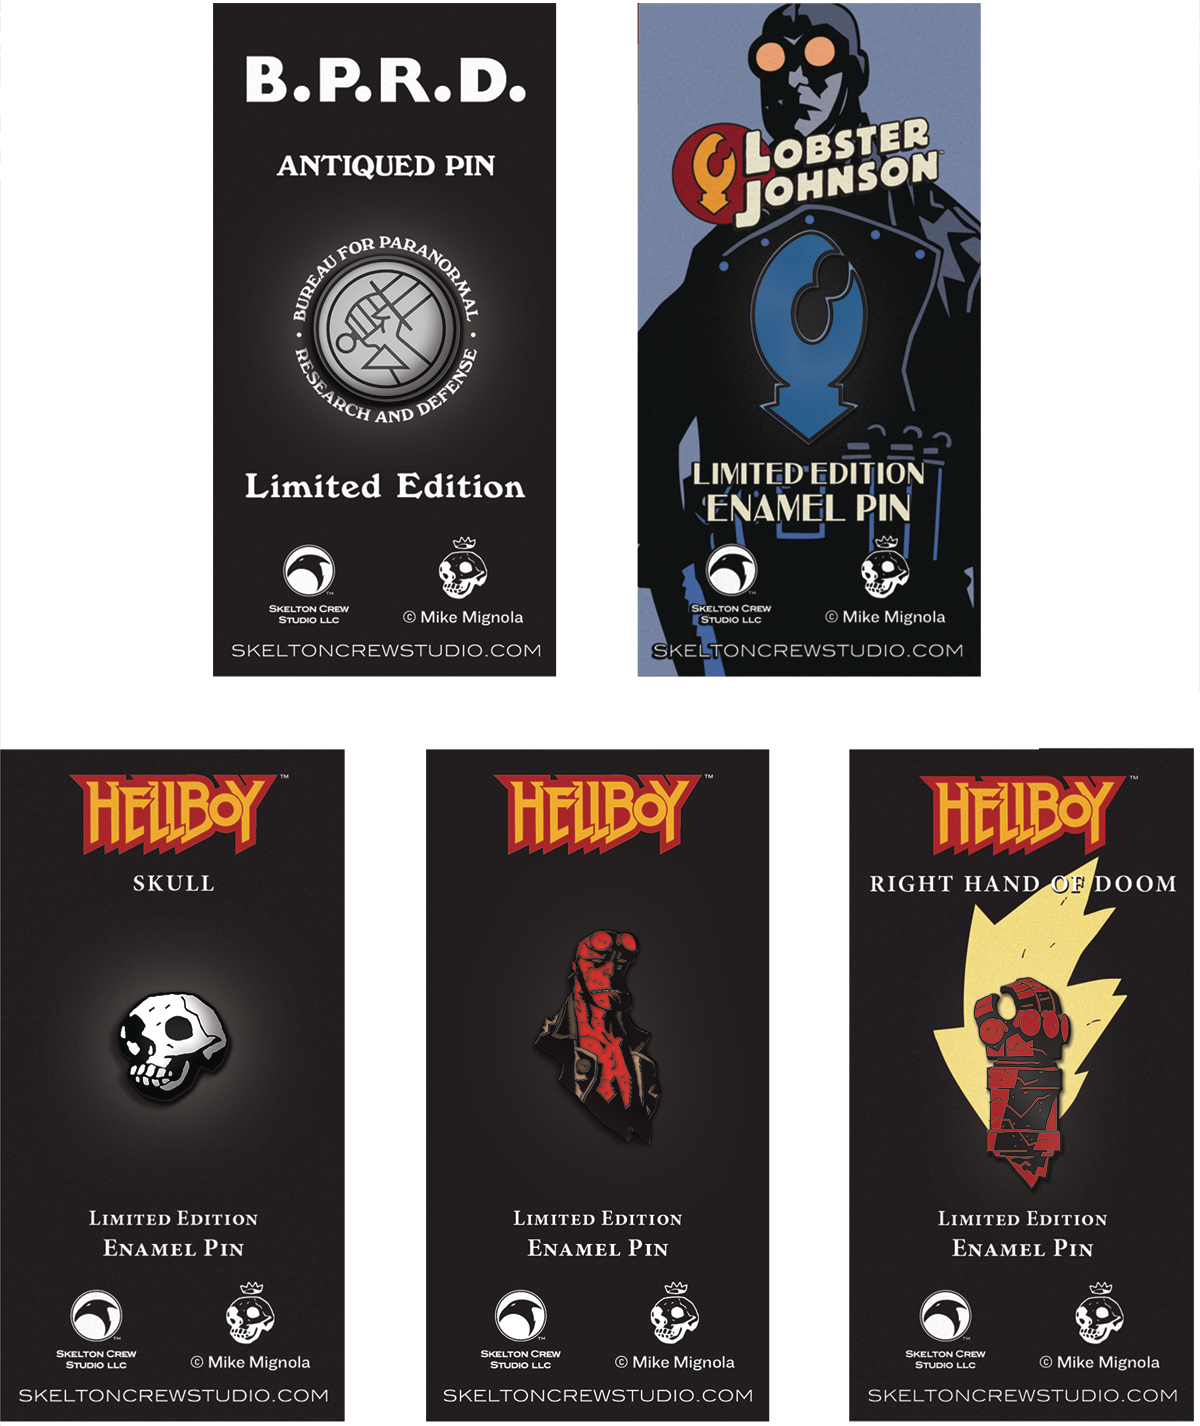 HELLBOY LTD ED ENAMEL PIN 10PC ASST